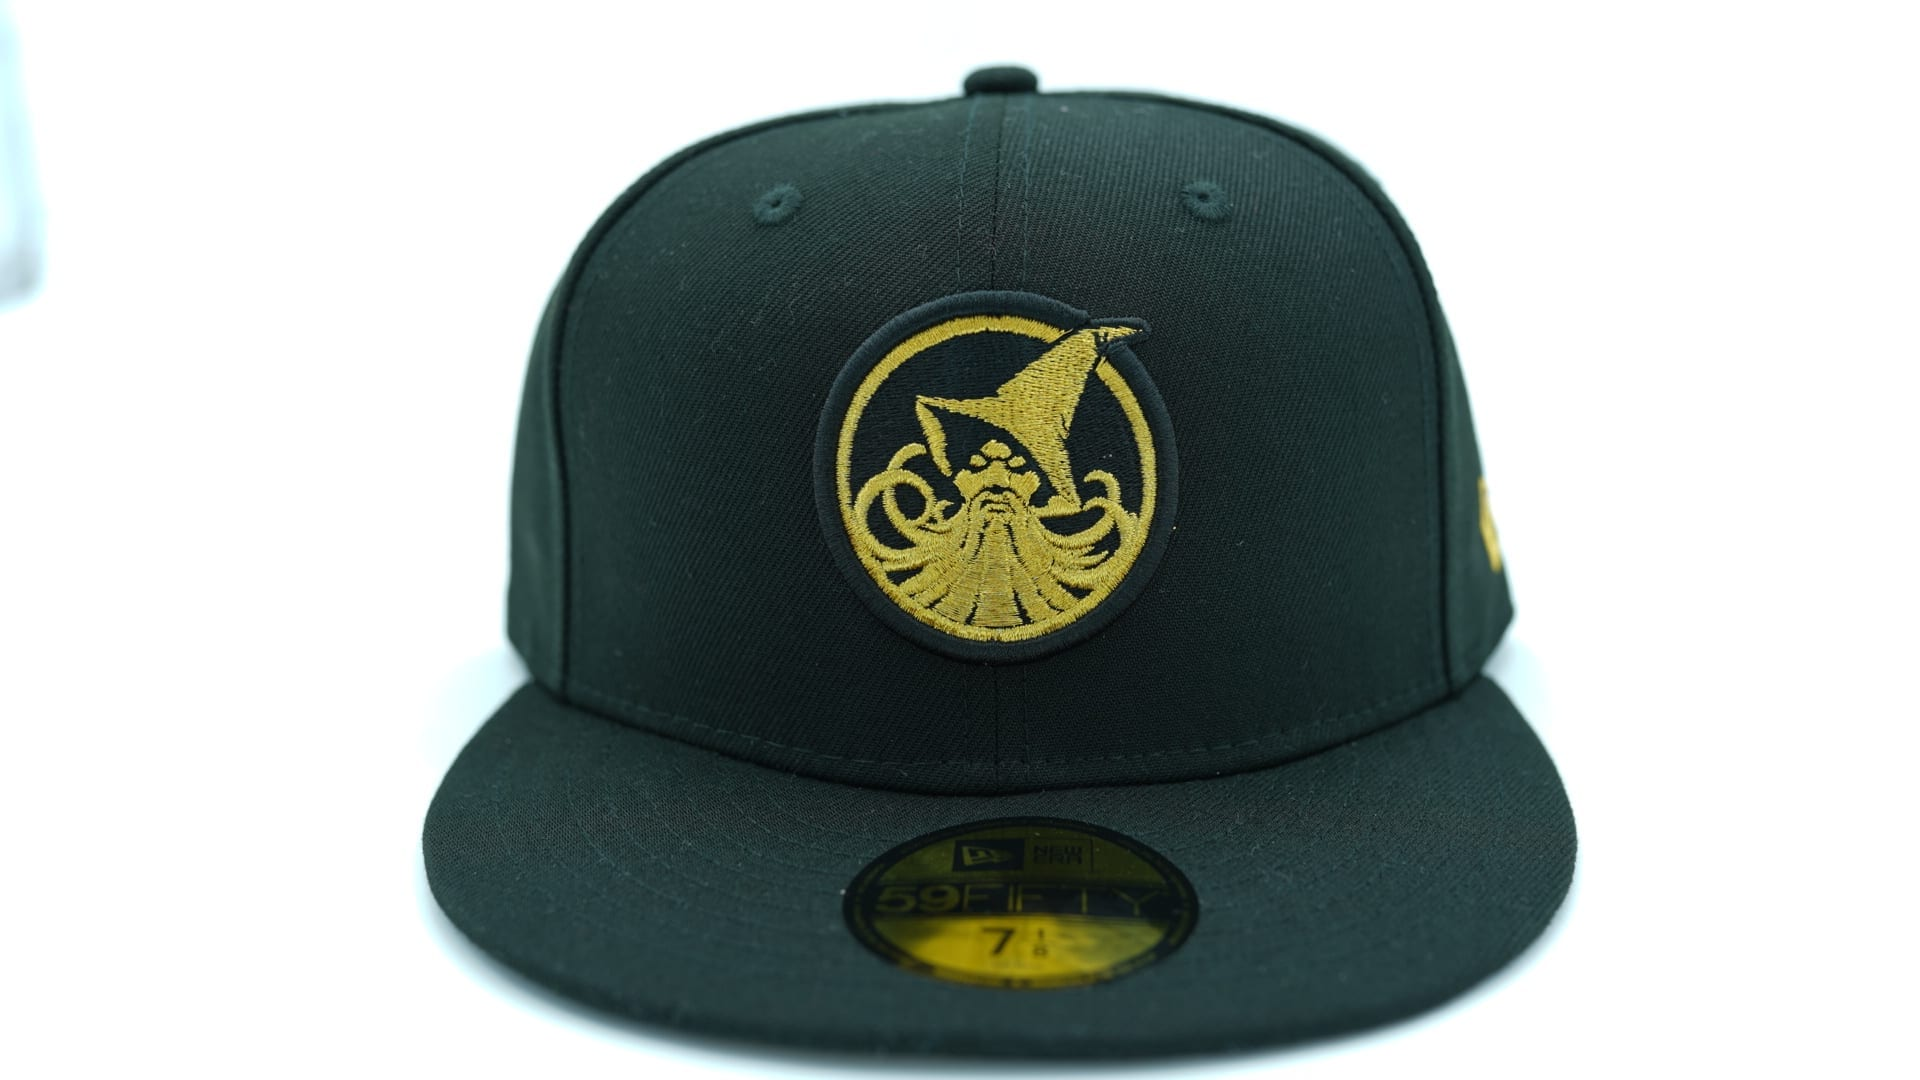 429c1fb782306 ... 59Fifty fitted baseball cap in the Brooklyn Dodgers colors. Embroidered  on the back are the worlds